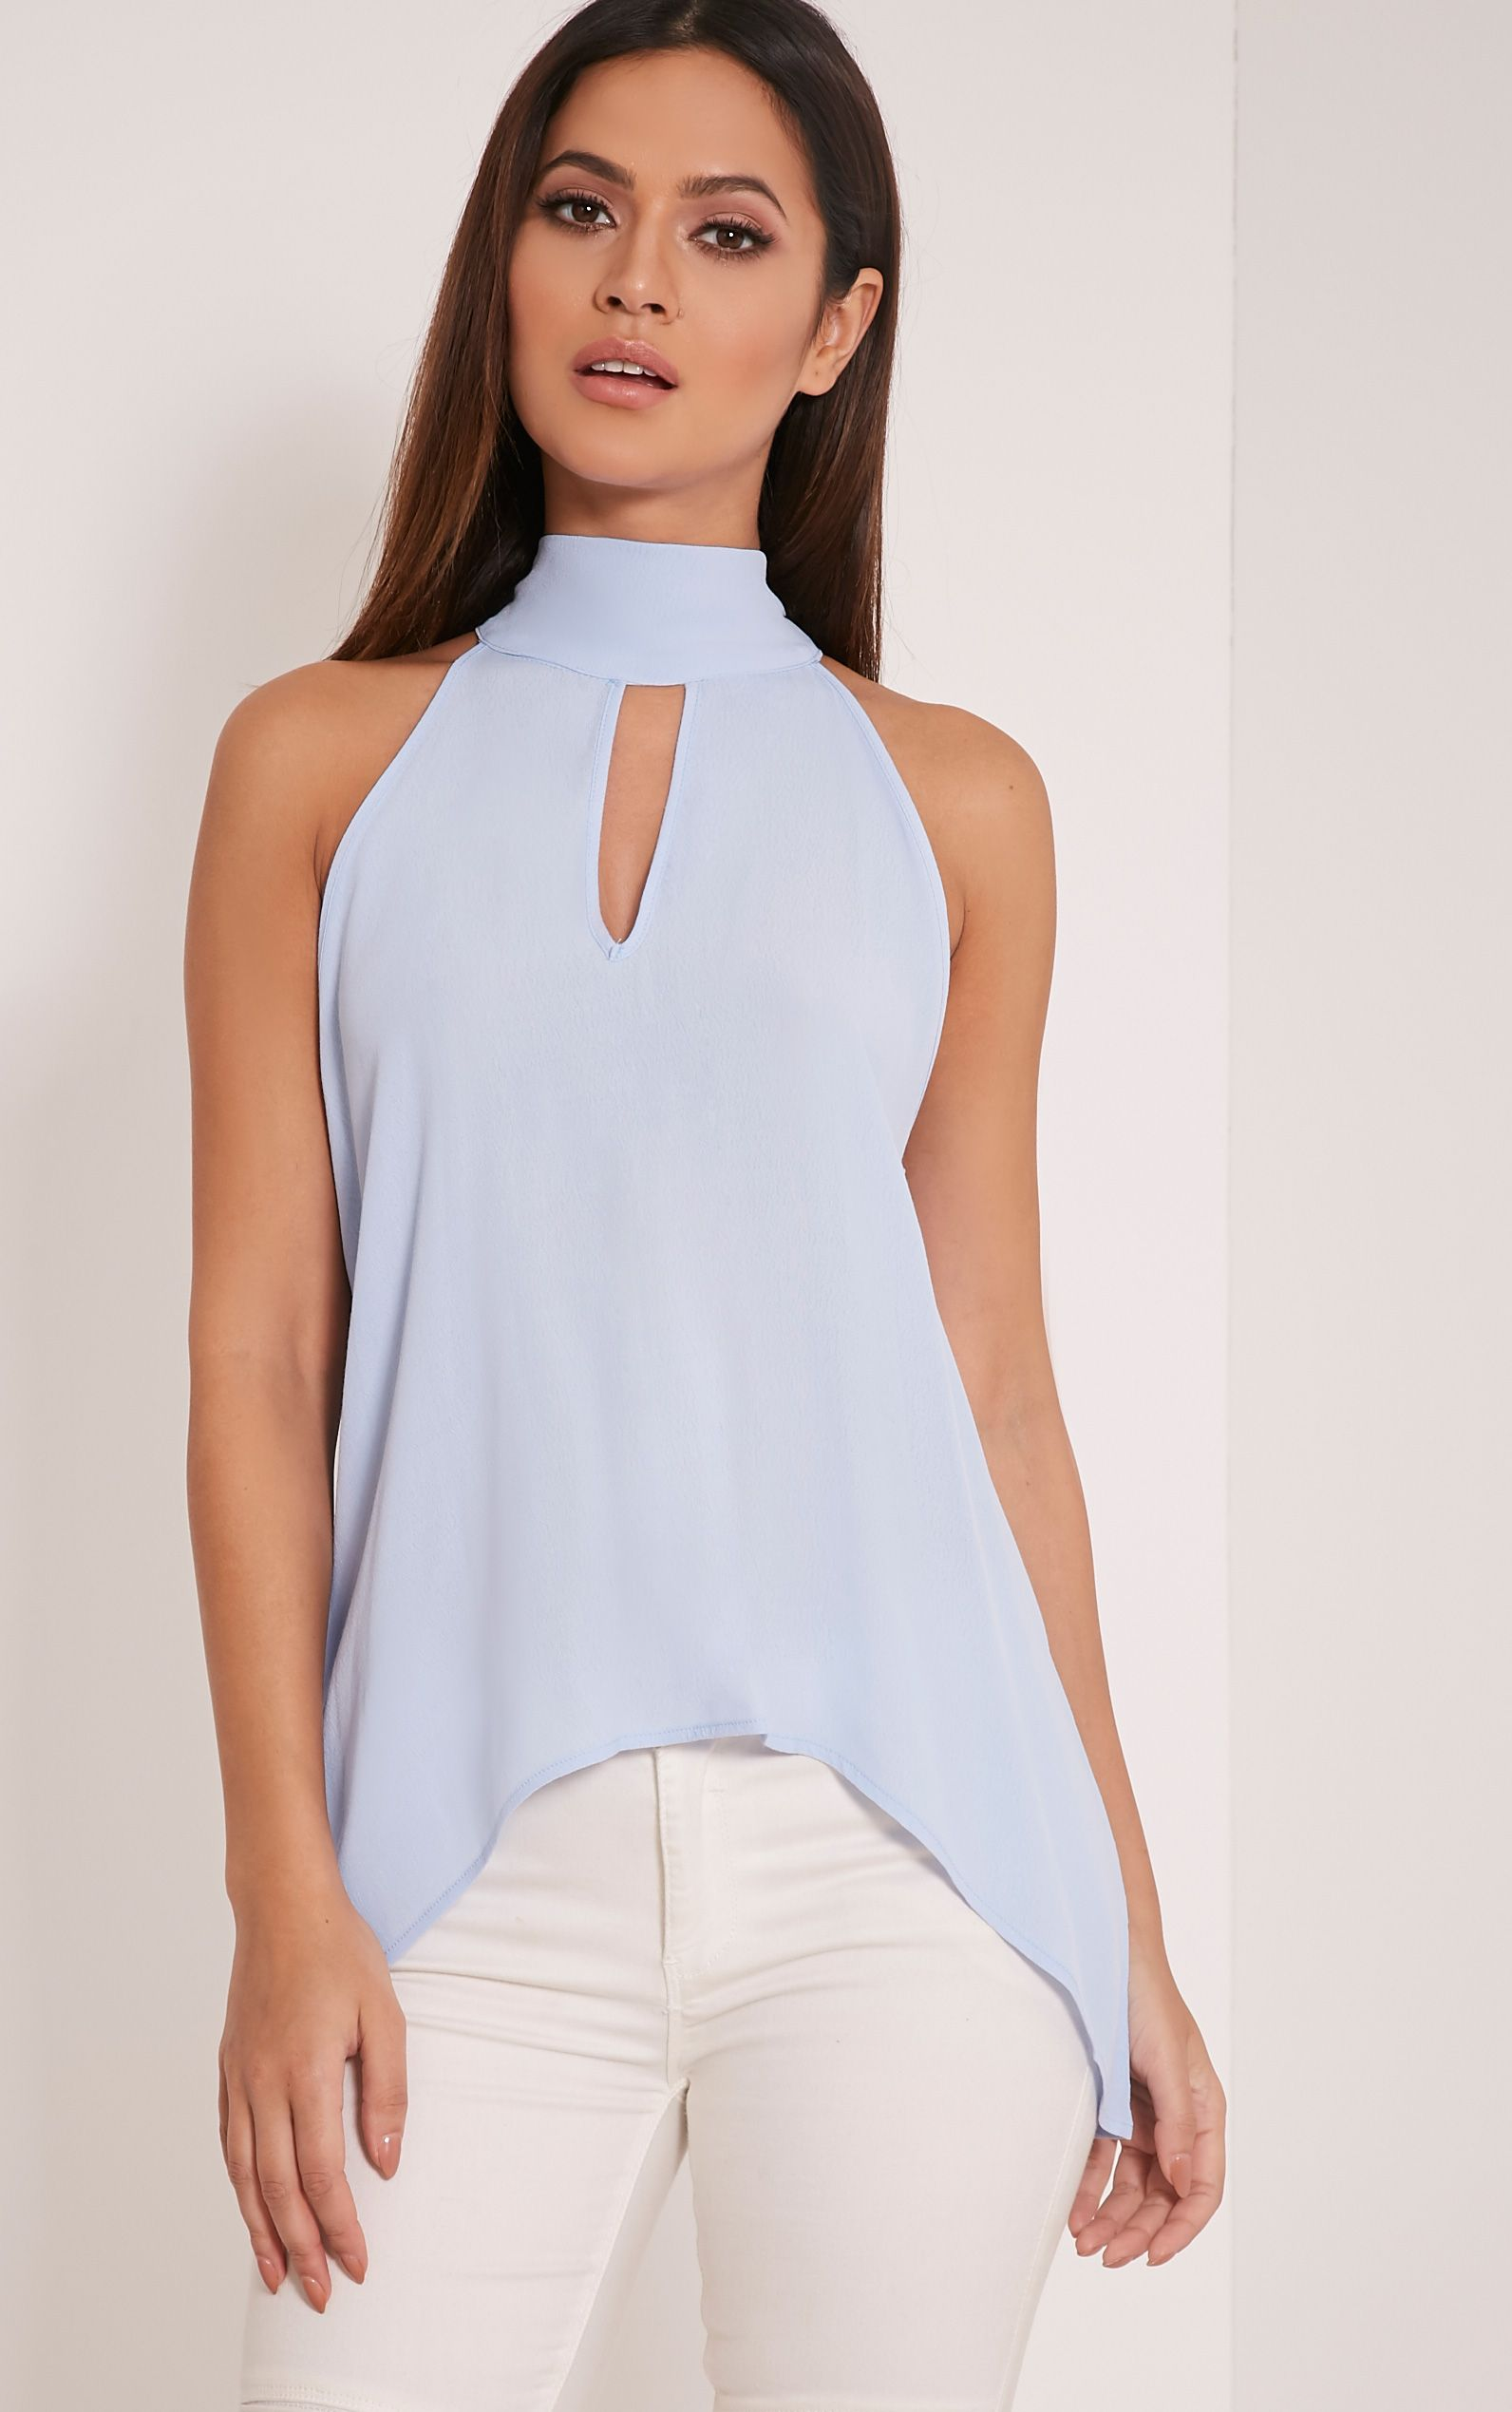 Camiella Powder Blue High Neck Tie Back Top 1